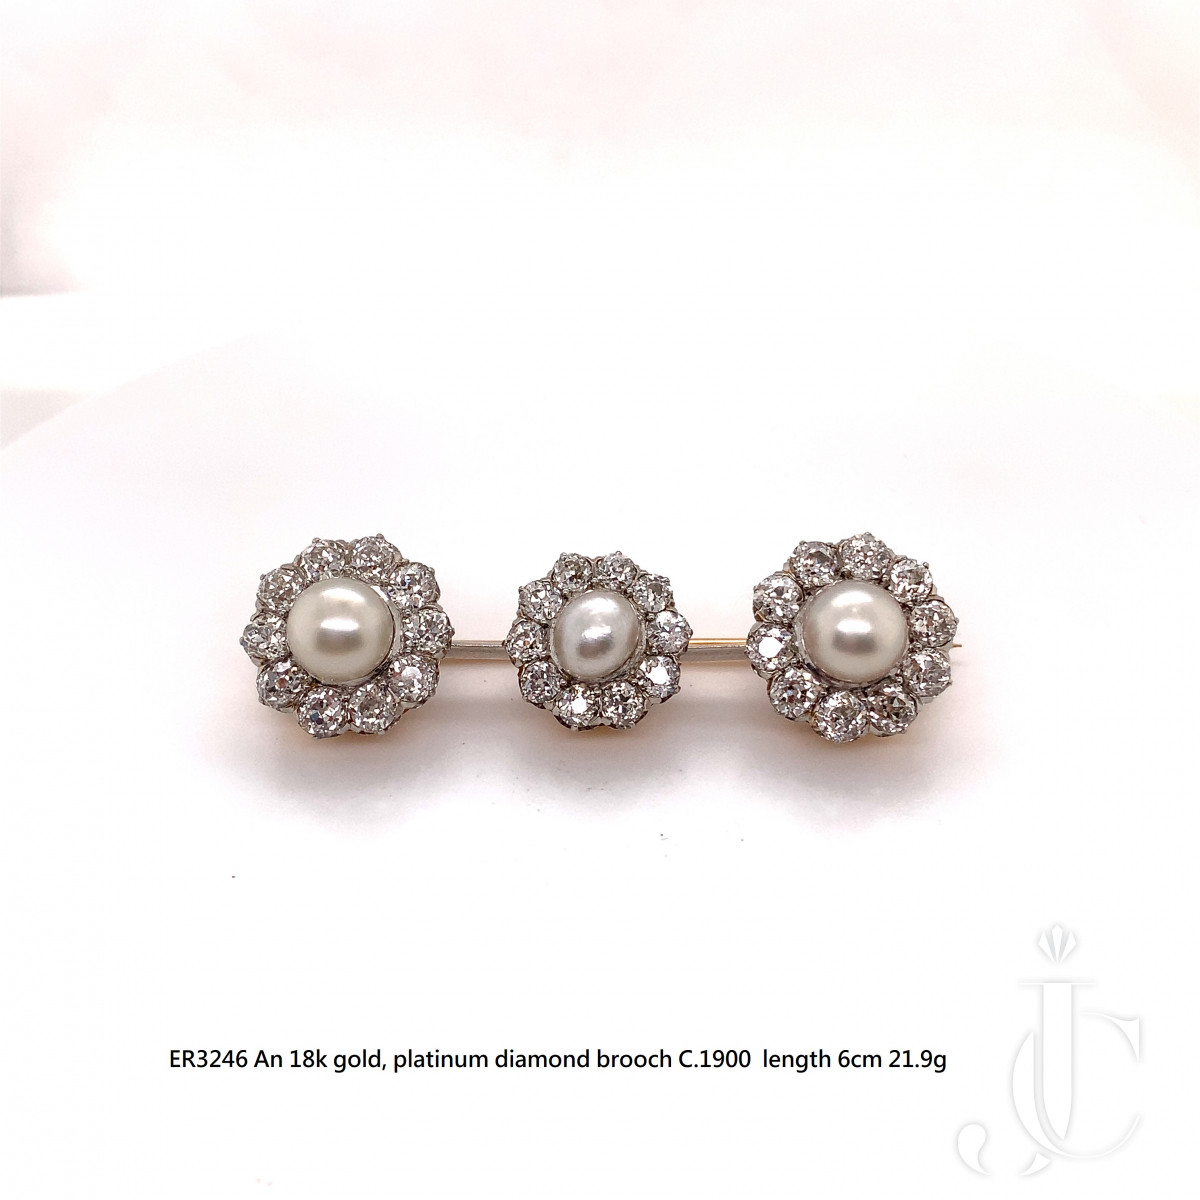 An 18k gold, platinum pearl and diamond brooch